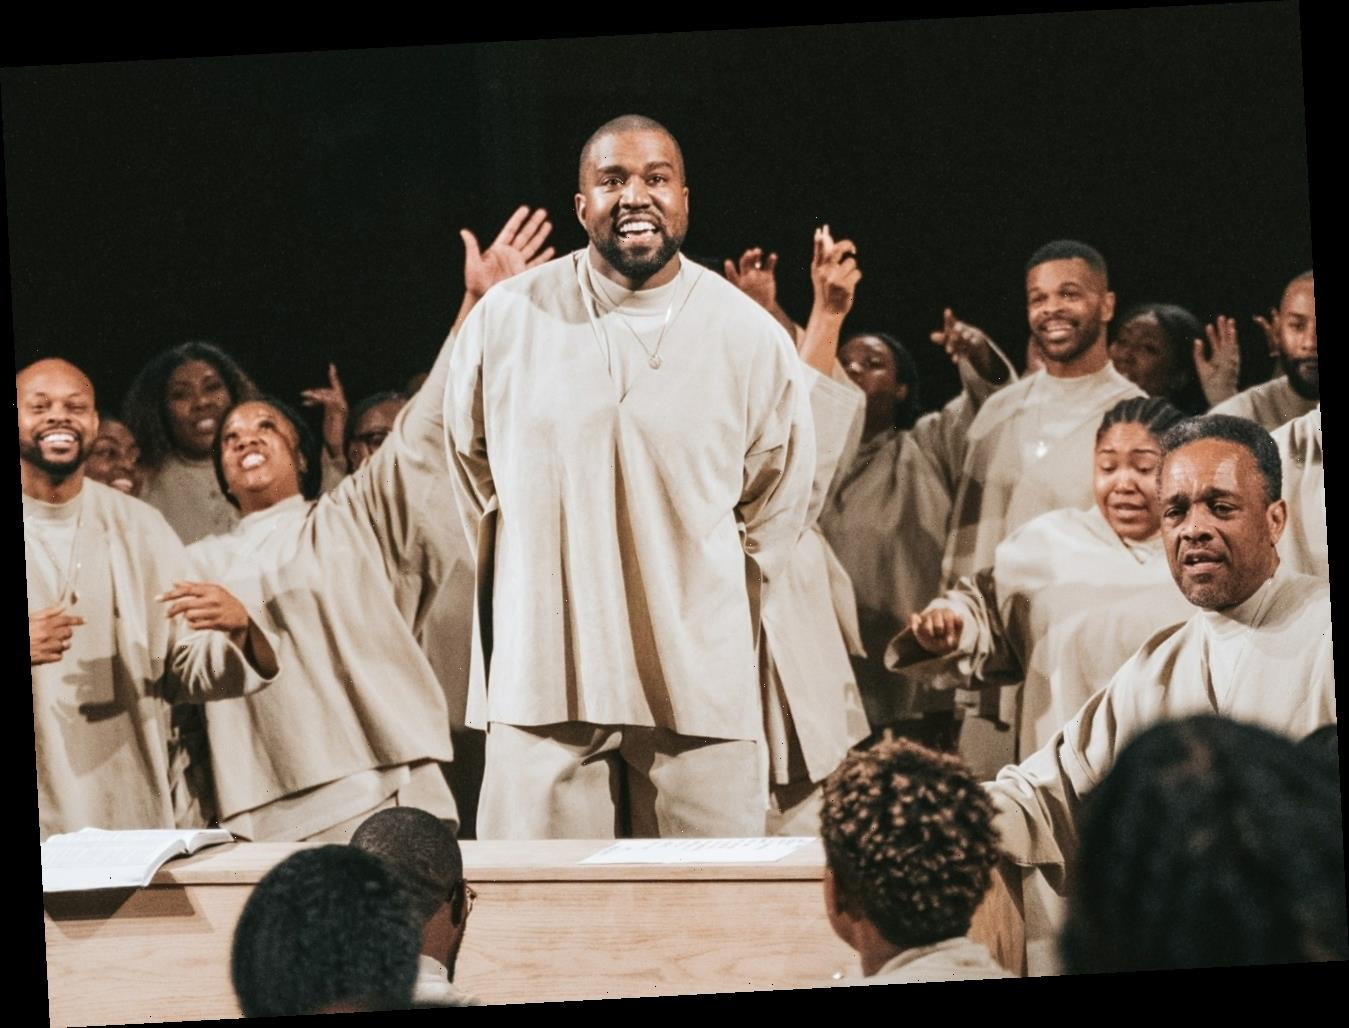 Kanye West learned that it's expensive to be the front man in a GOP con job